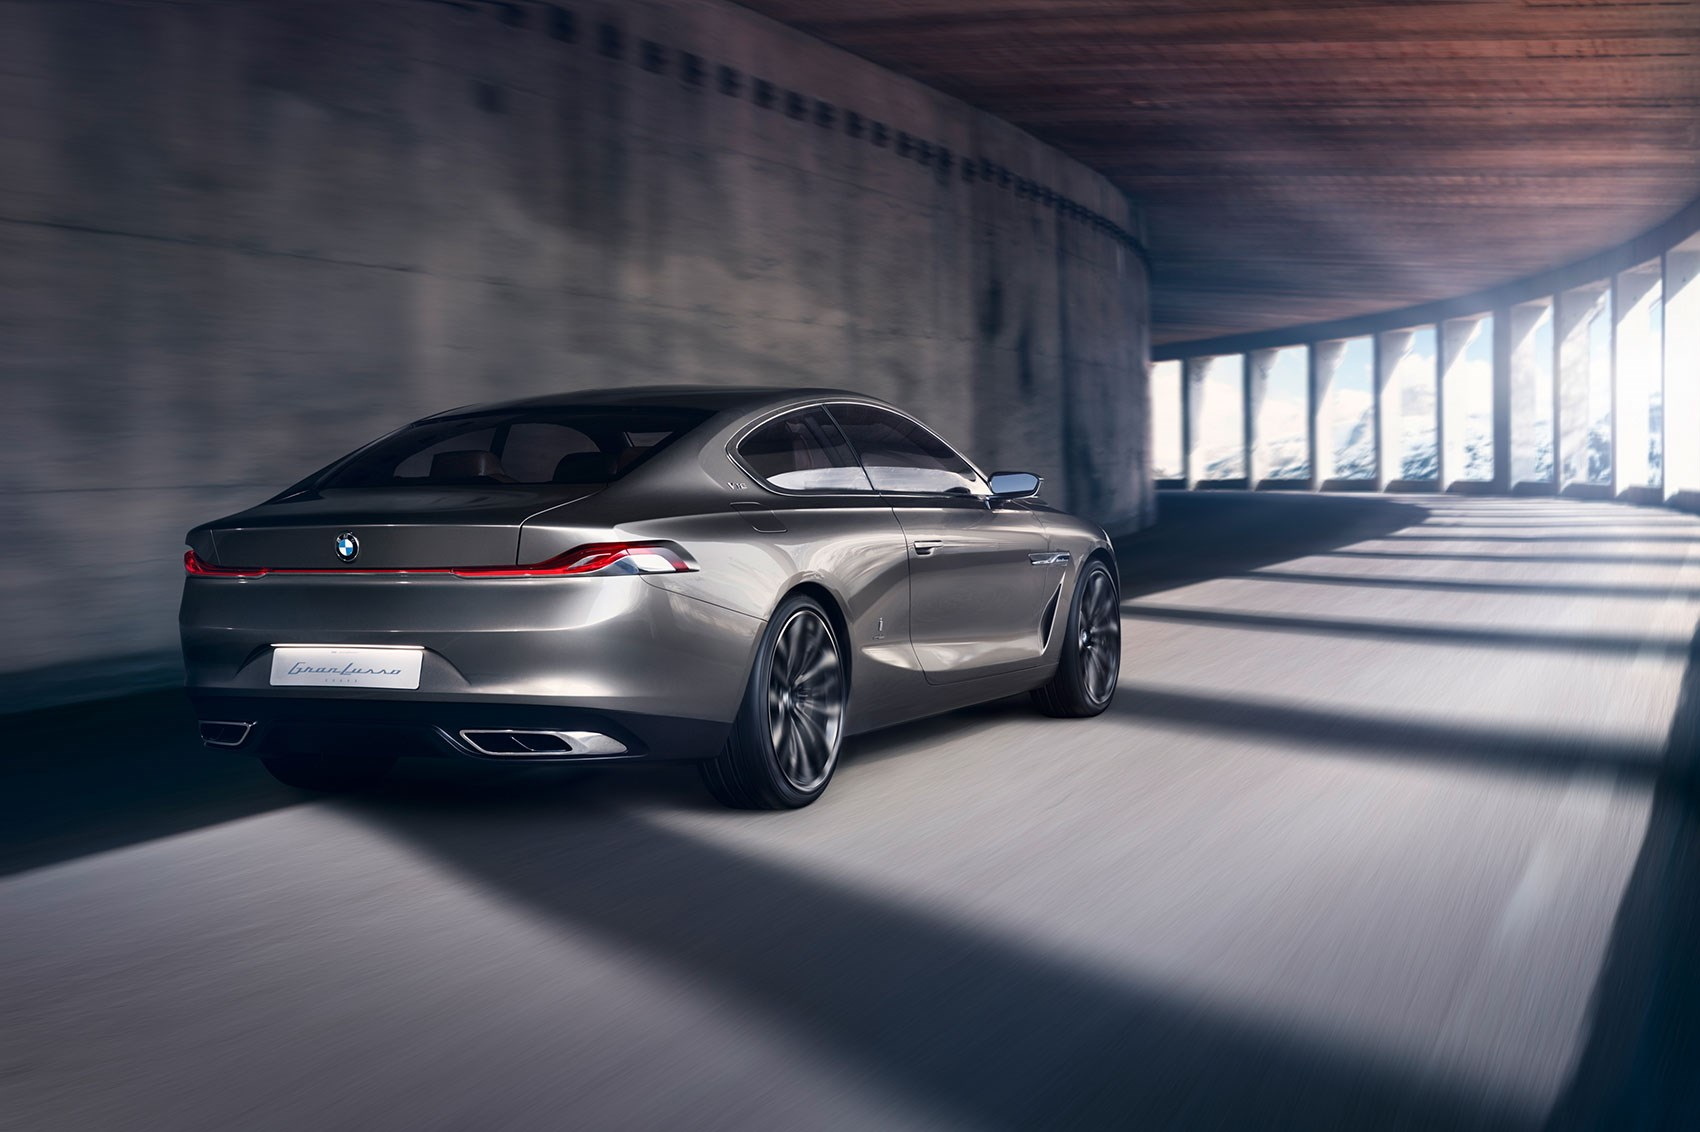 Bmw M8 Release Date >> BMW's Dreamliner: 9-series coupe coming in 2020 by CAR ...